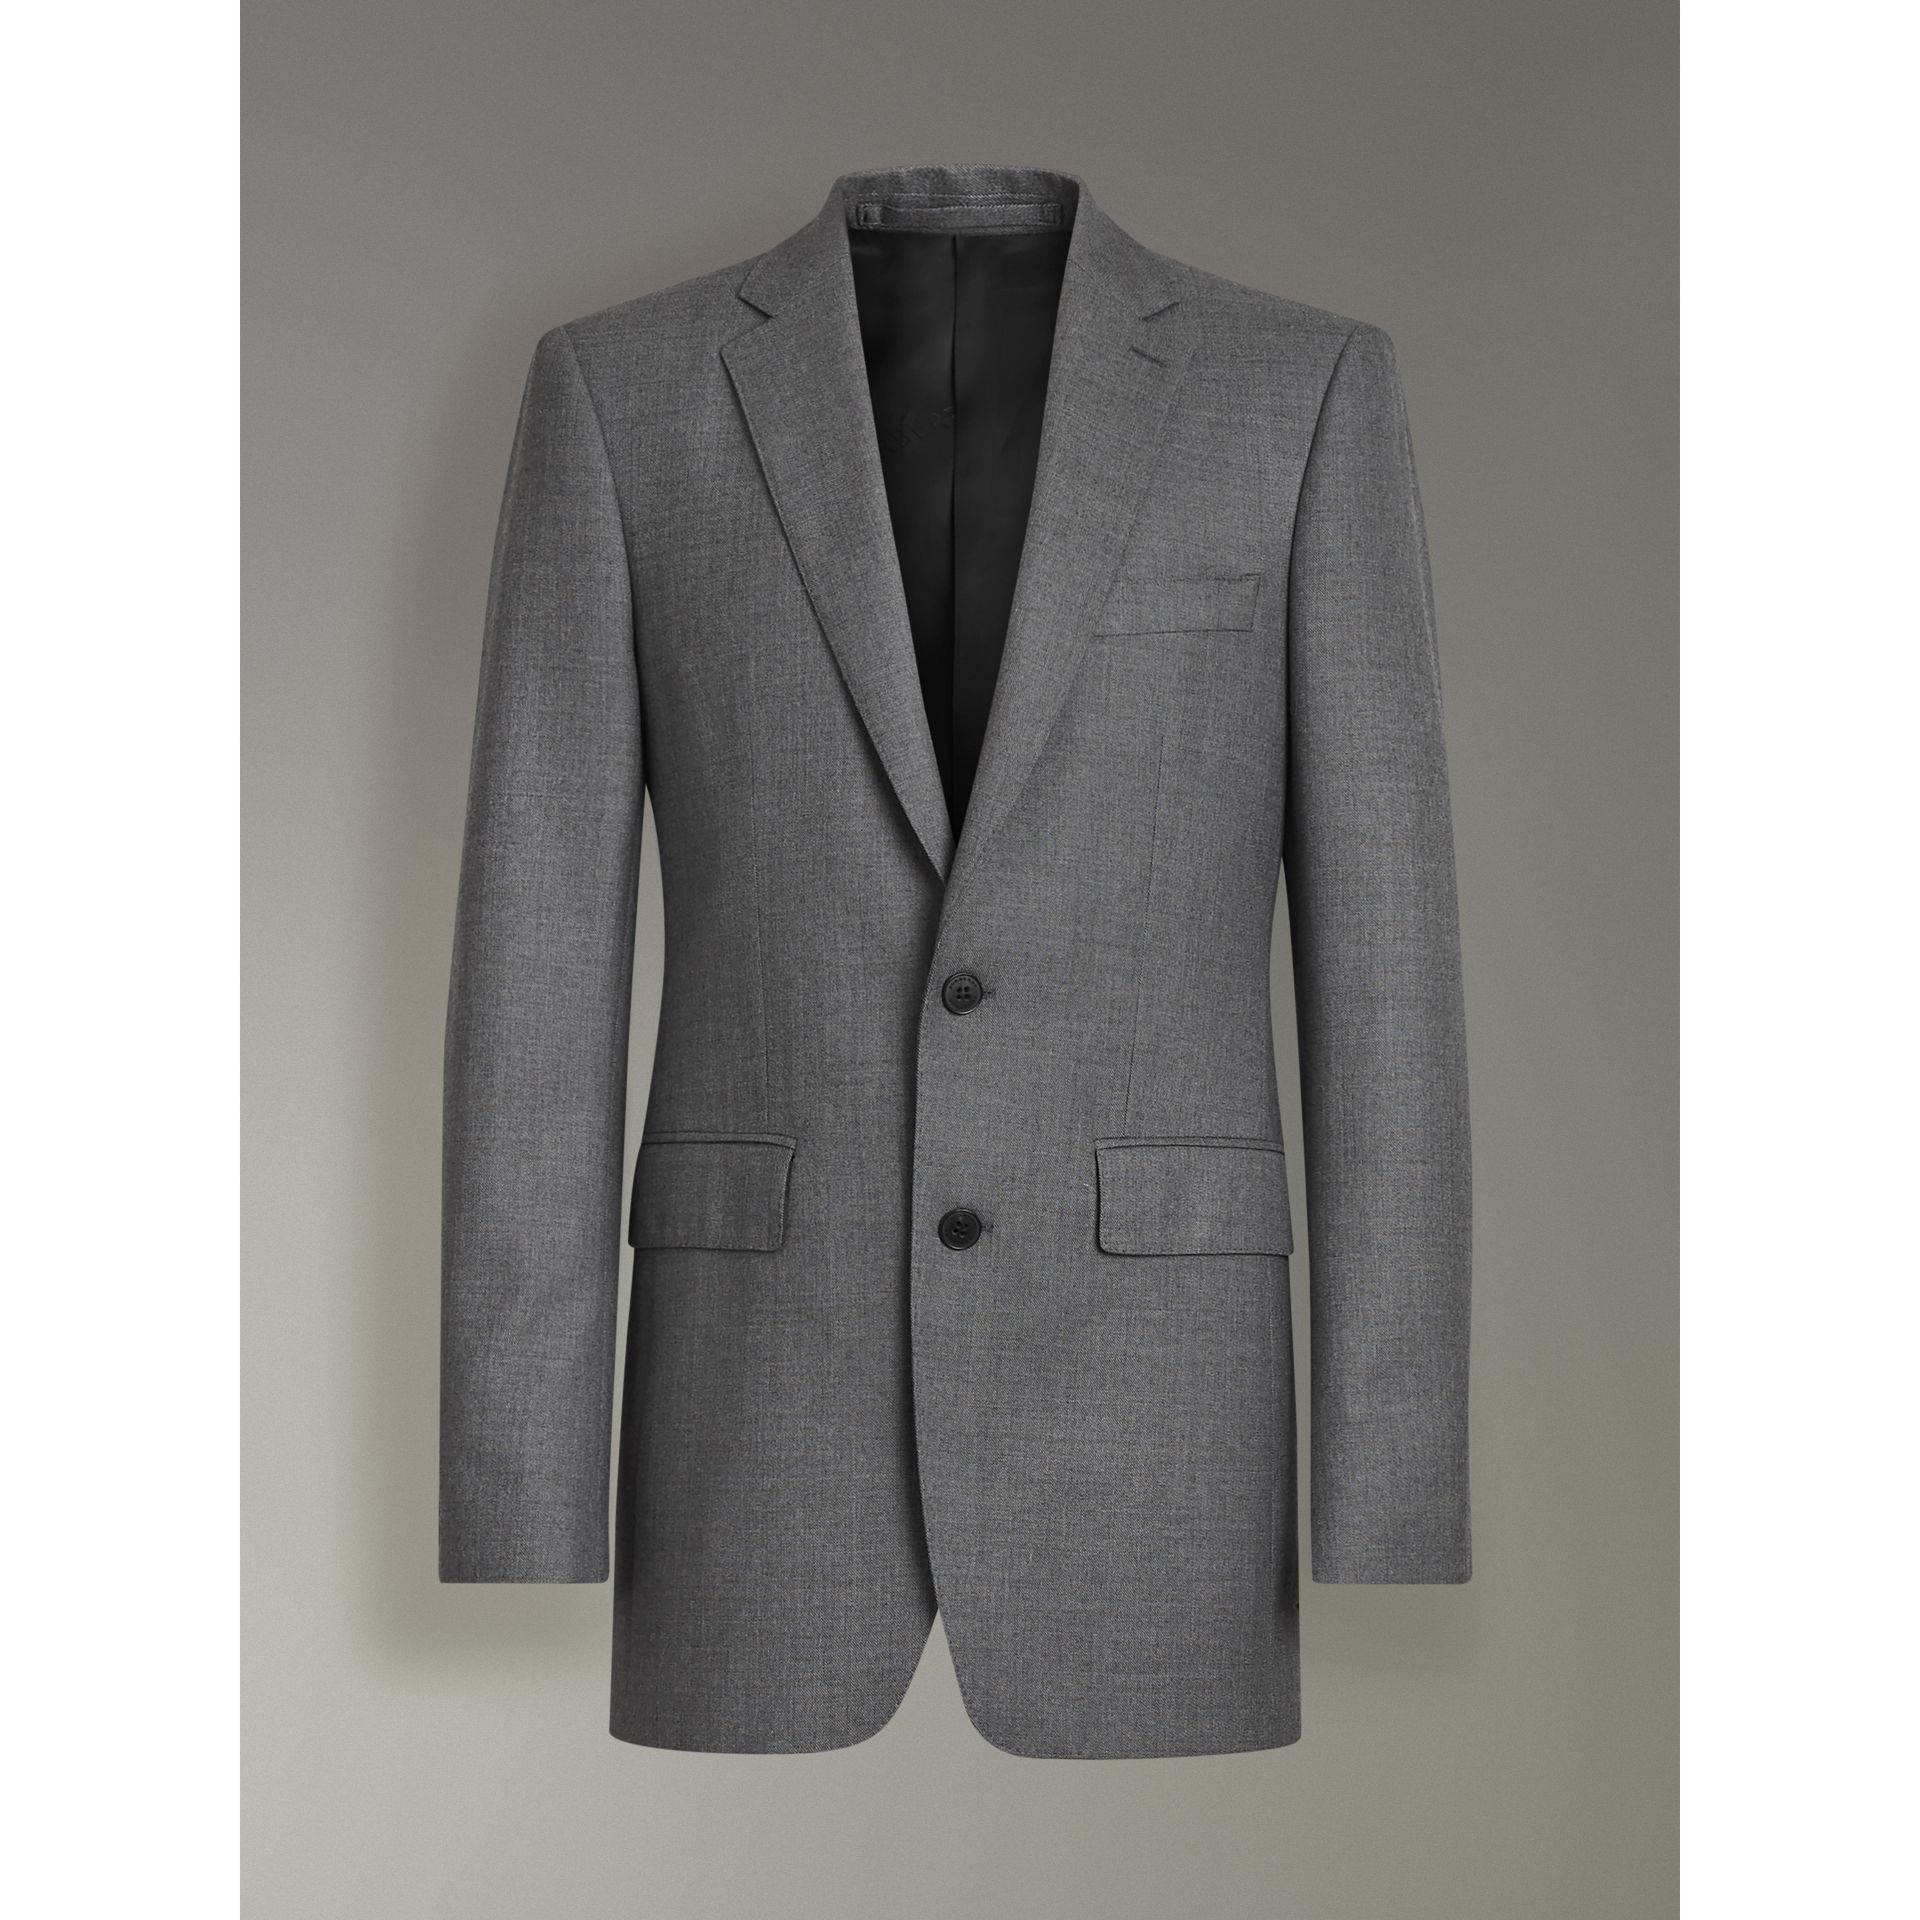 Classic Fit Sharkskin Wool Suit in Mid Grey Melange - Men | Burberry Singapore - gallery image 3